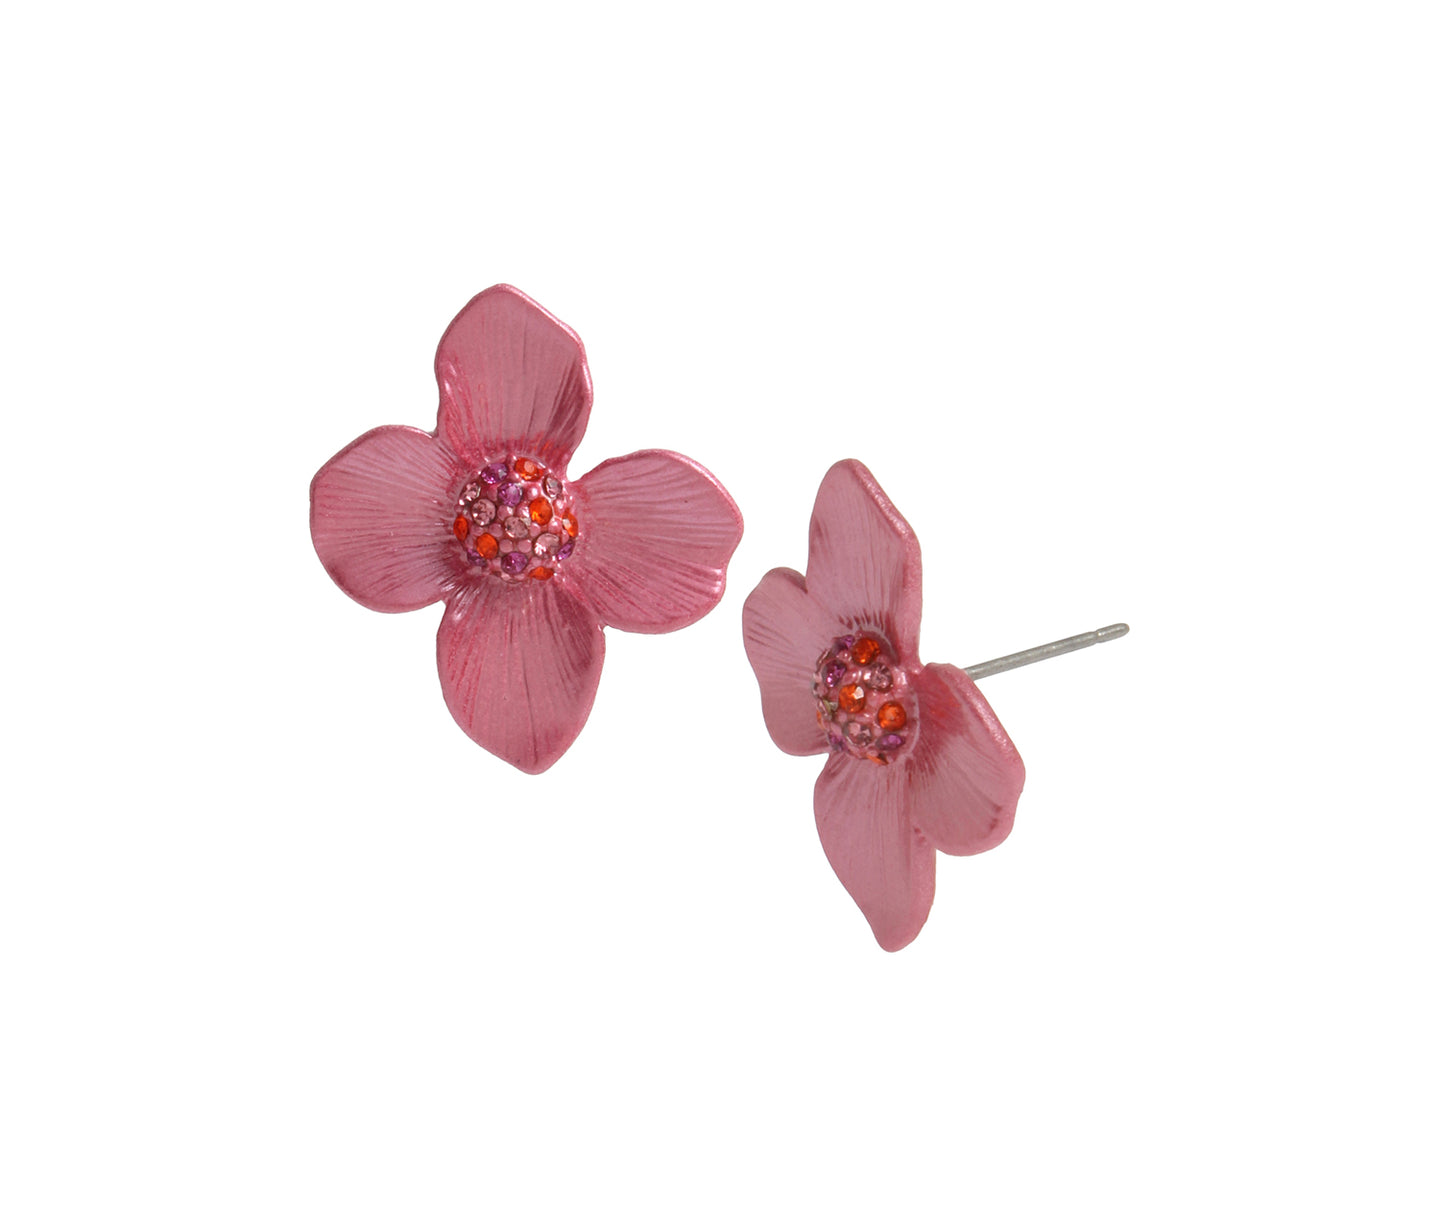 OPULENT FLORAL FLOWER STUD EARRINGS PINK - JEWELRY - Betsey Johnson